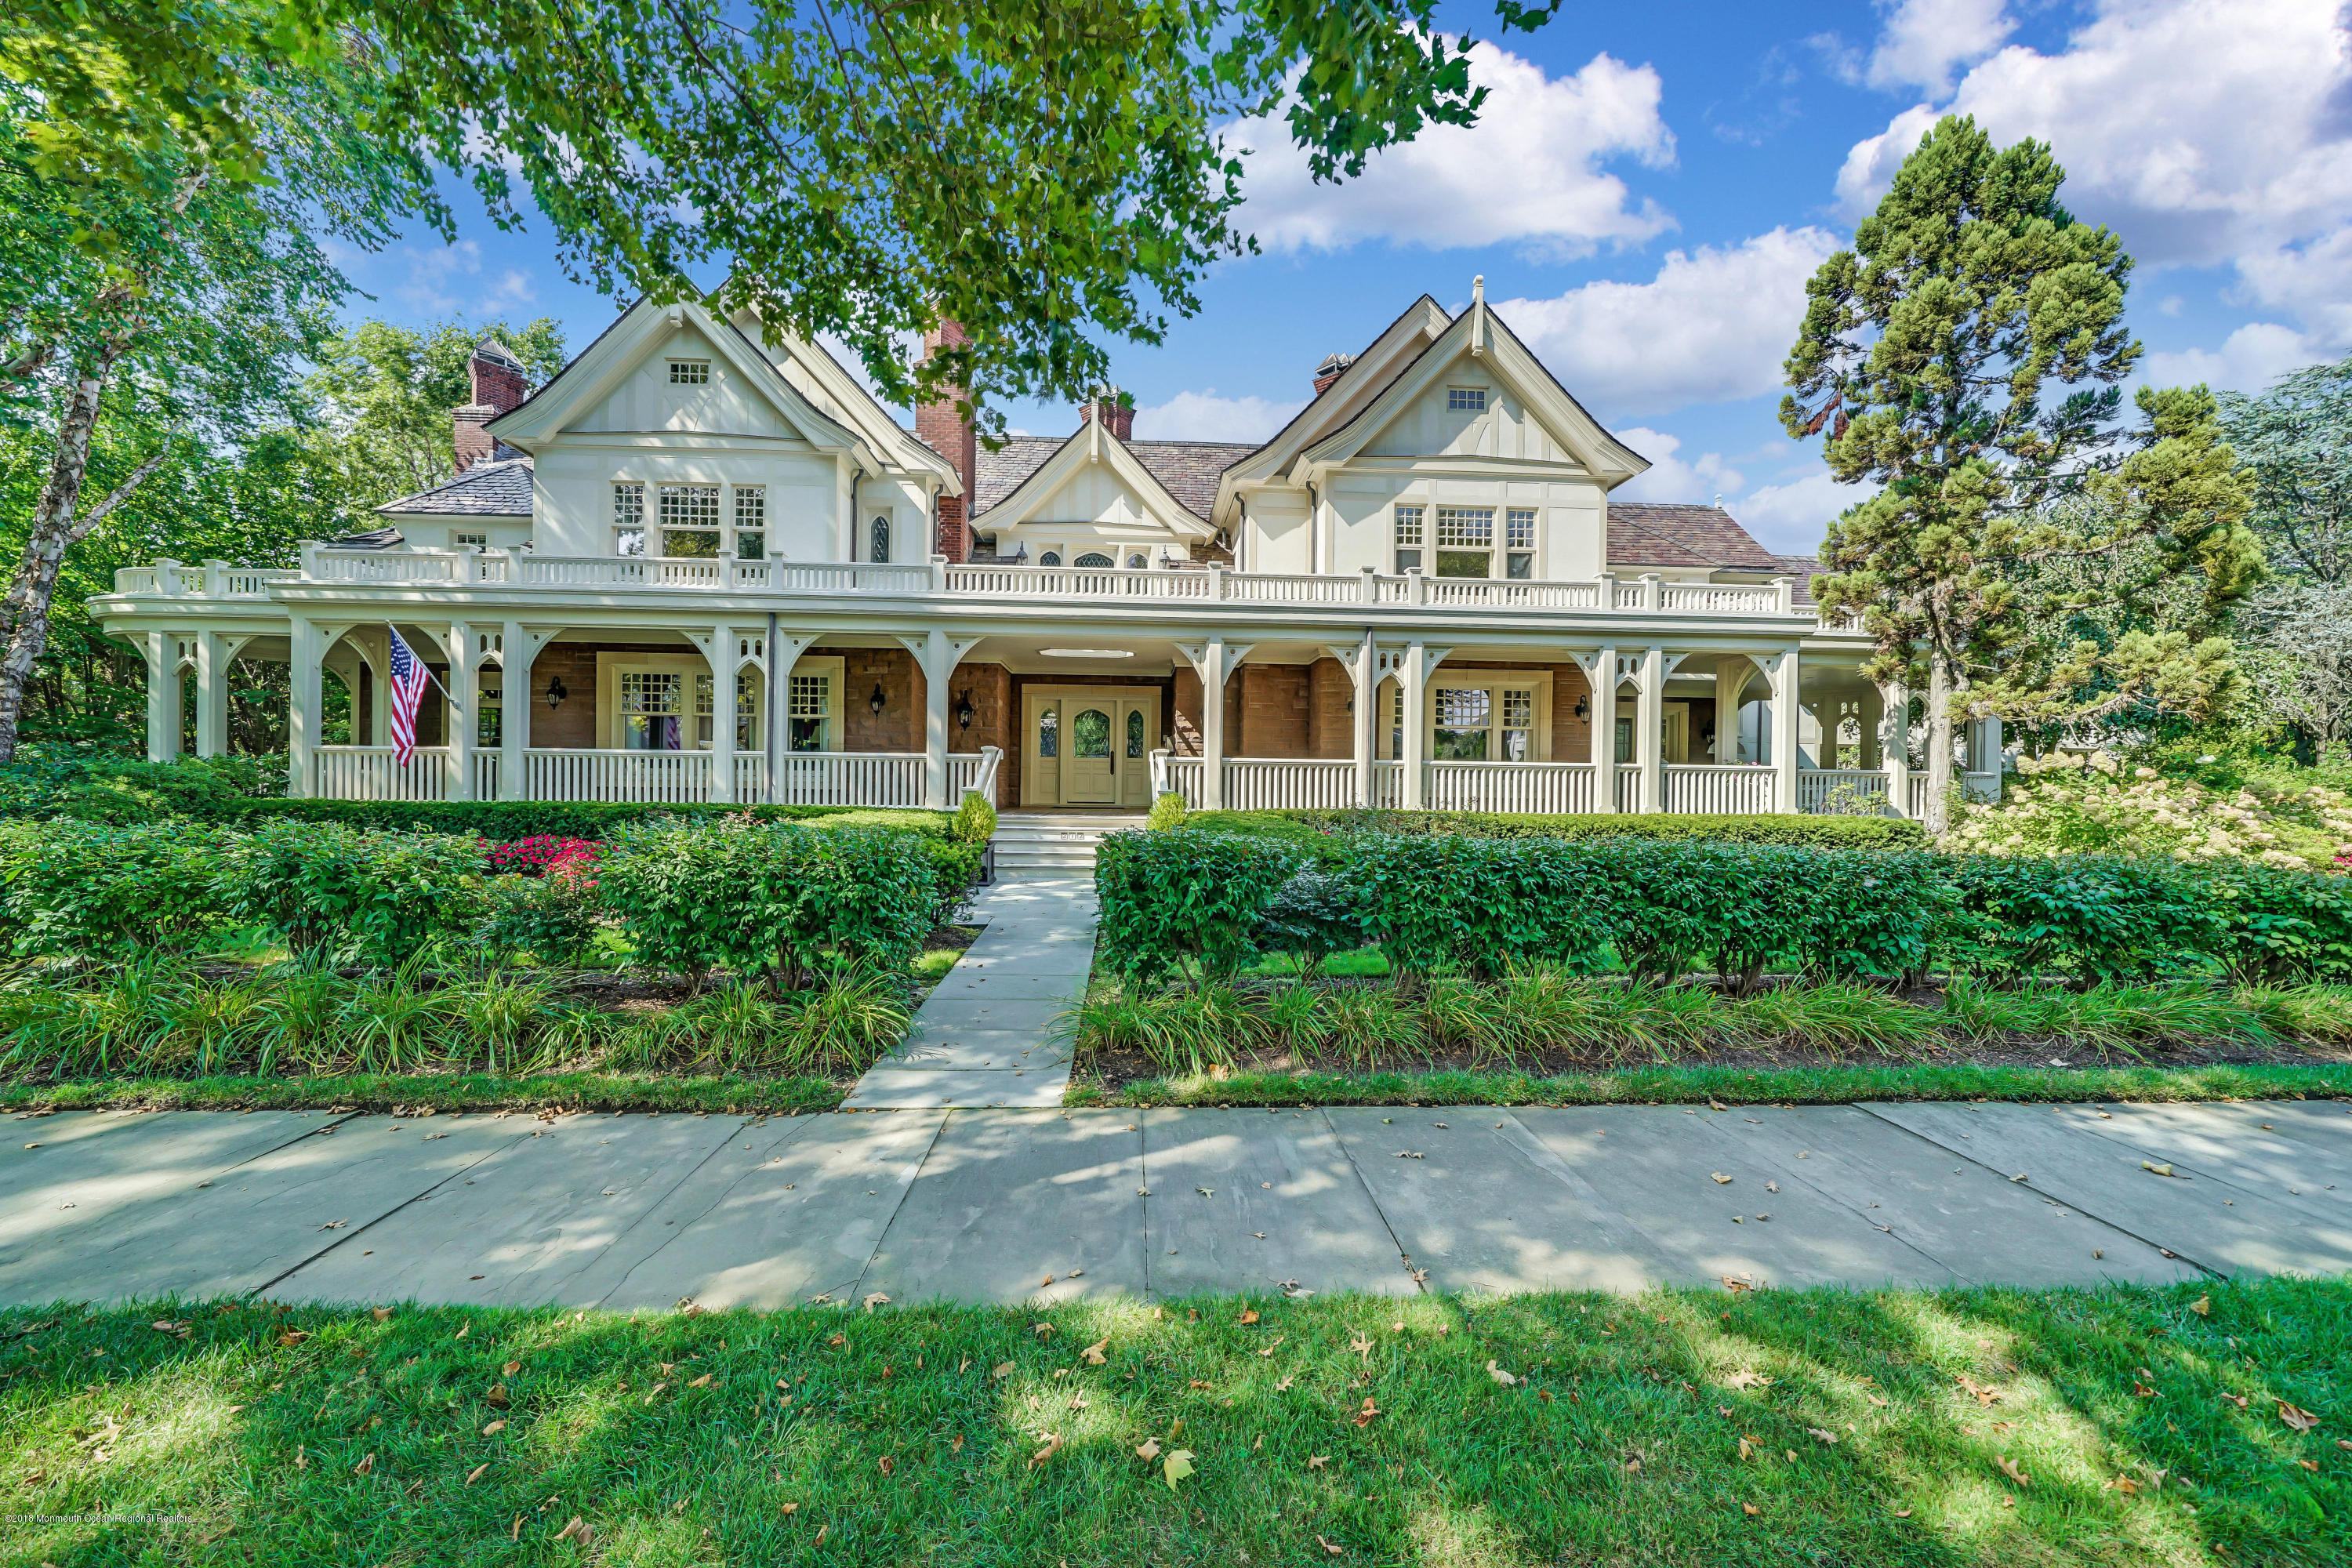 Swell Spring Lake Homes For Sale In Central Jersey Nj Download Free Architecture Designs Intelgarnamadebymaigaardcom